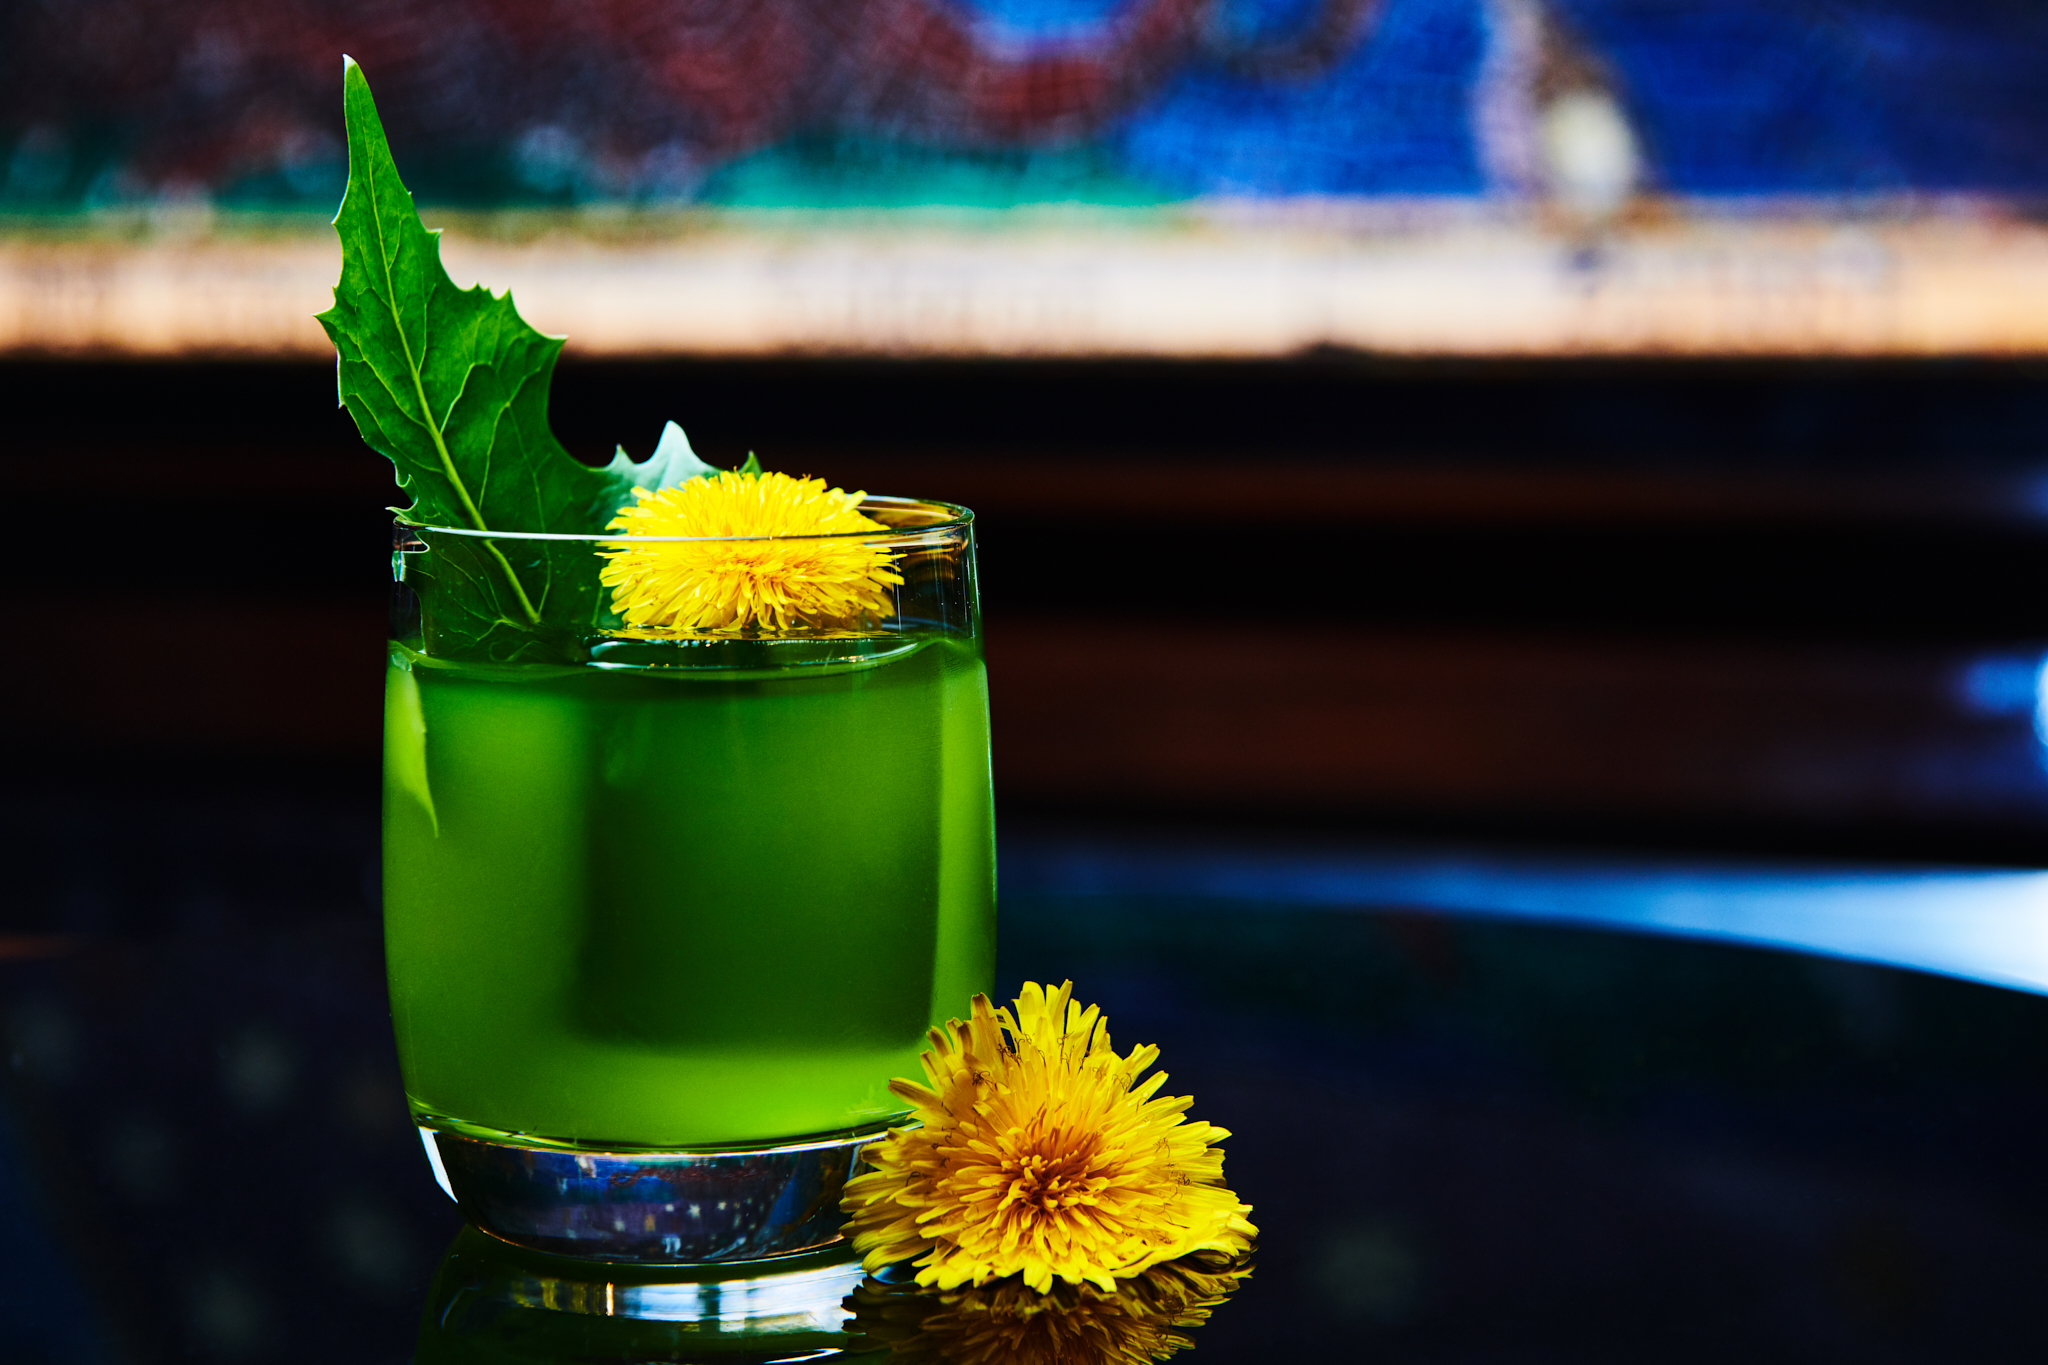 The Dandelion, made with Bianco aperitivo and Botanist gin, is new on the Columbia Room tasting menu. (Image: Karlin Villondo Photography)